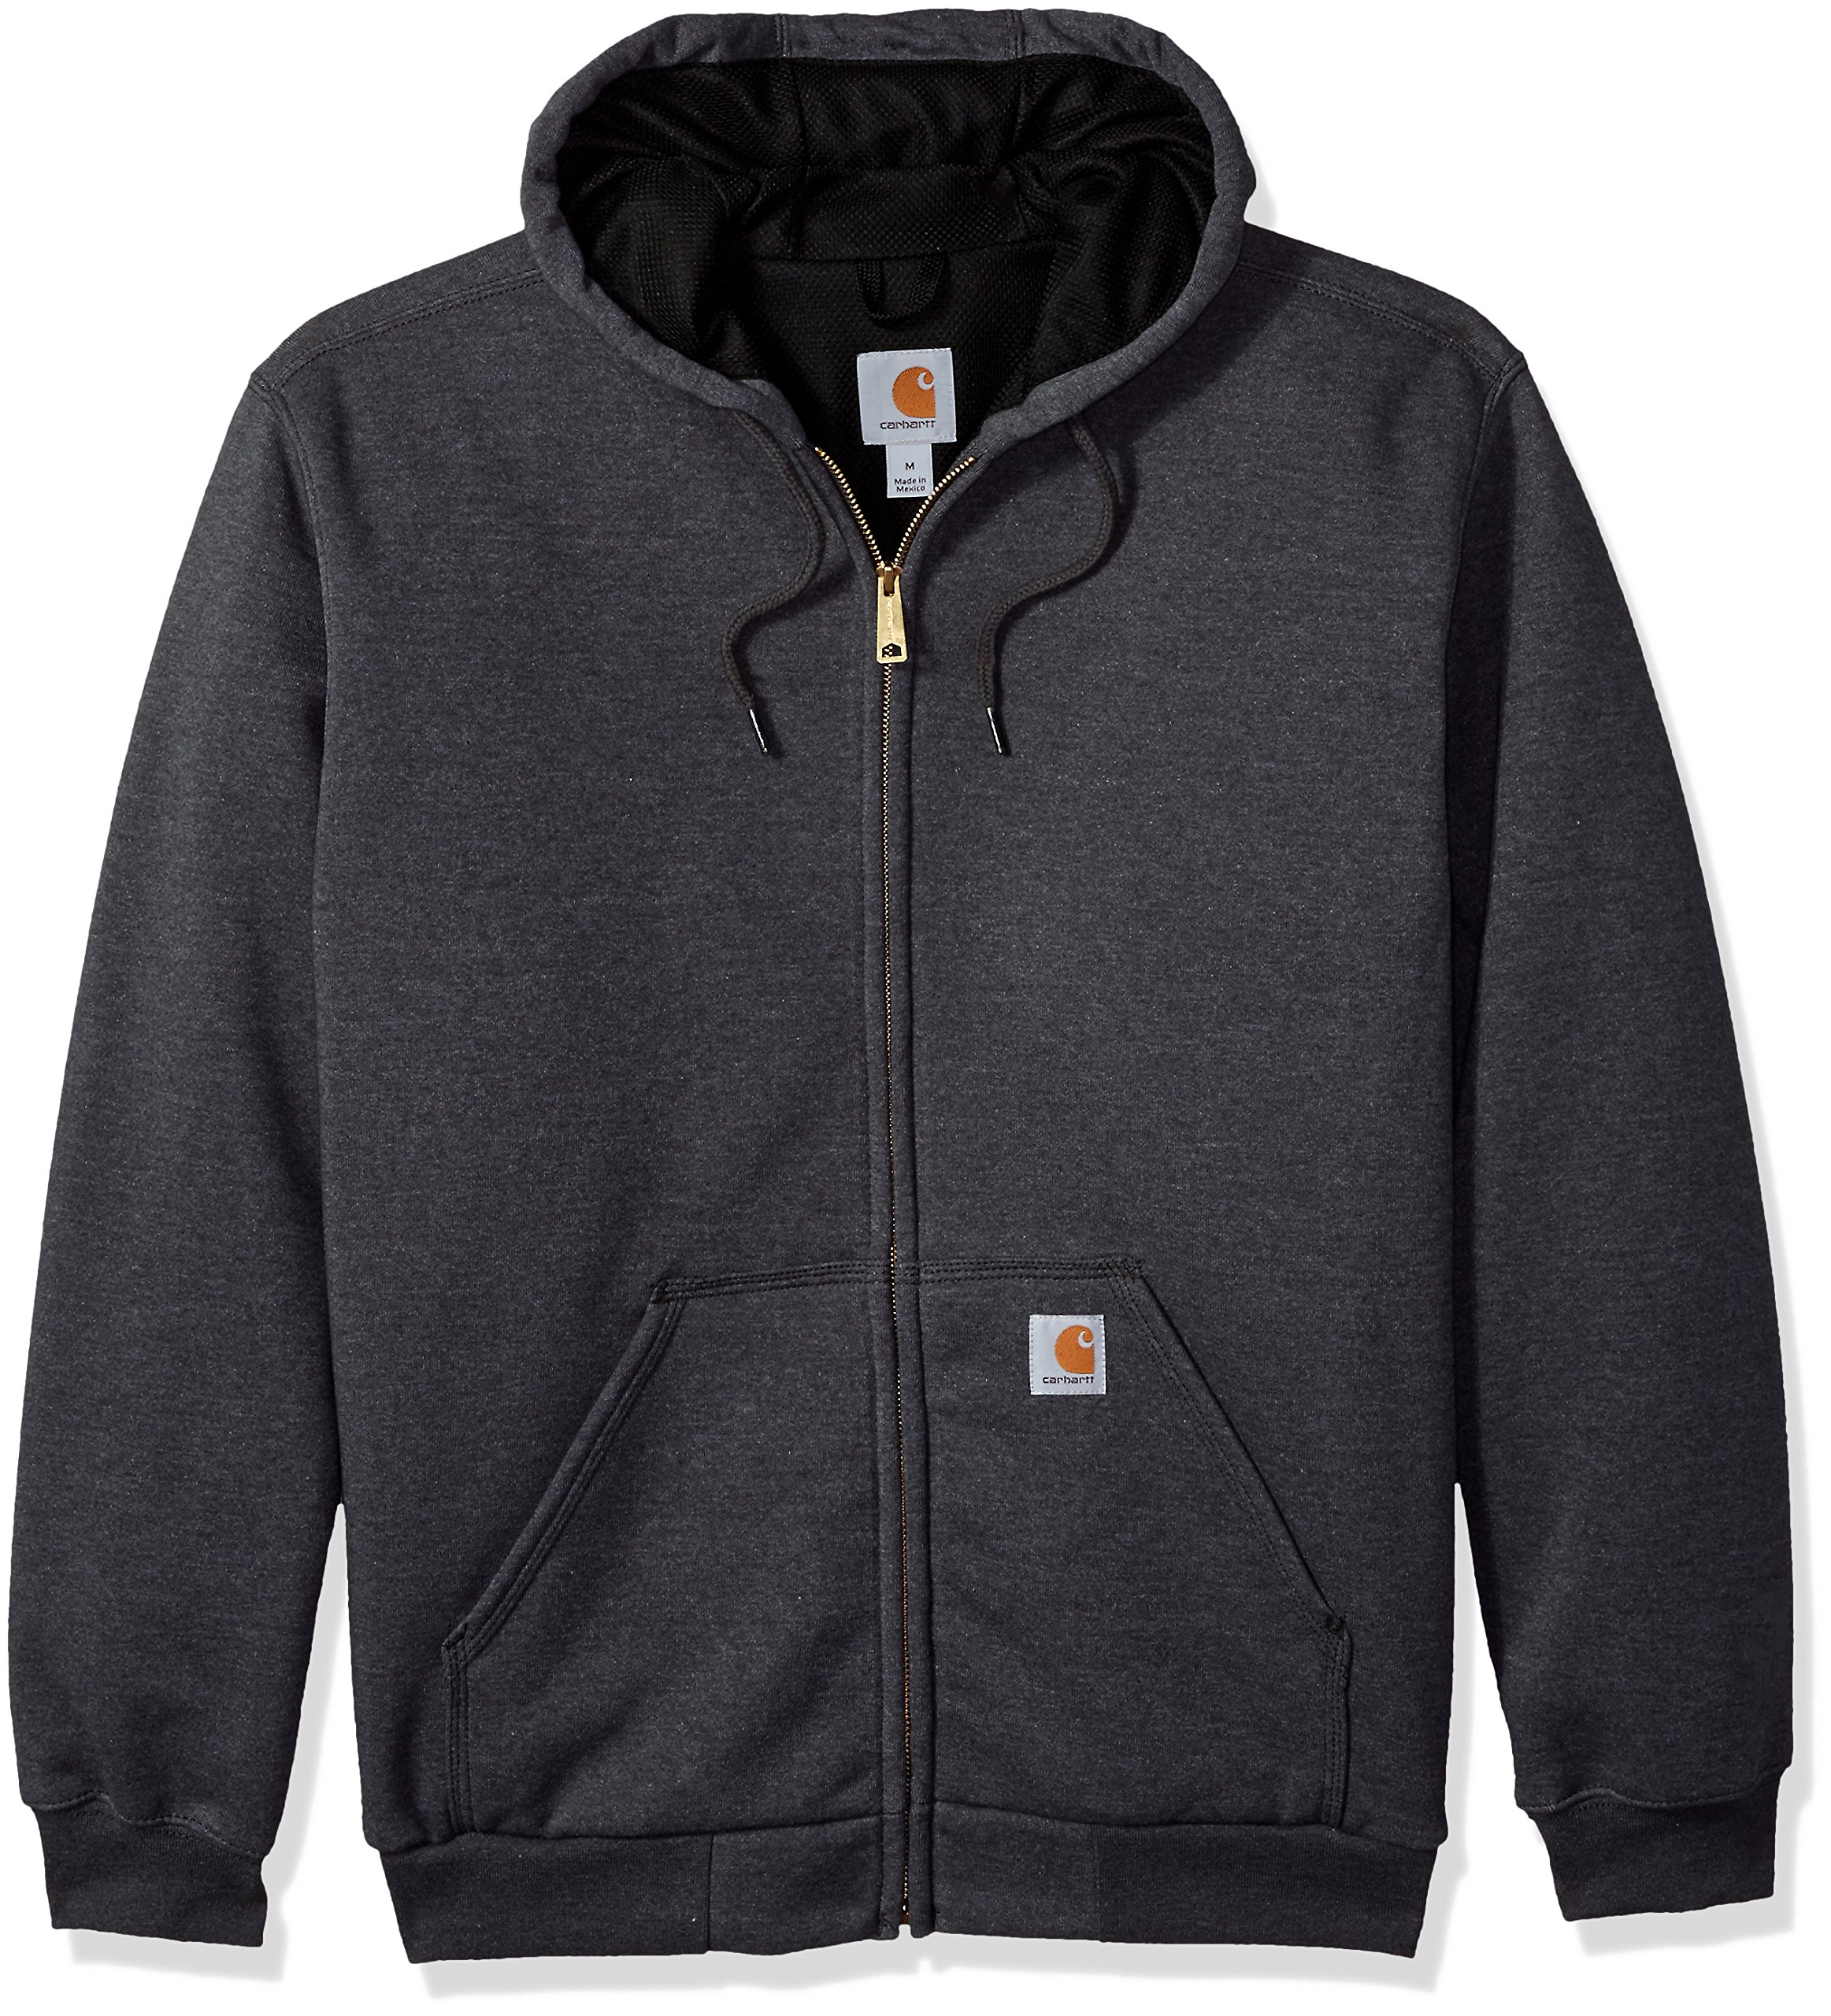 Carhartt Men's RD Rutland Thermal Lined Hooded Zip Front Sweatshirt, Carbon Heather - New 2X-Large